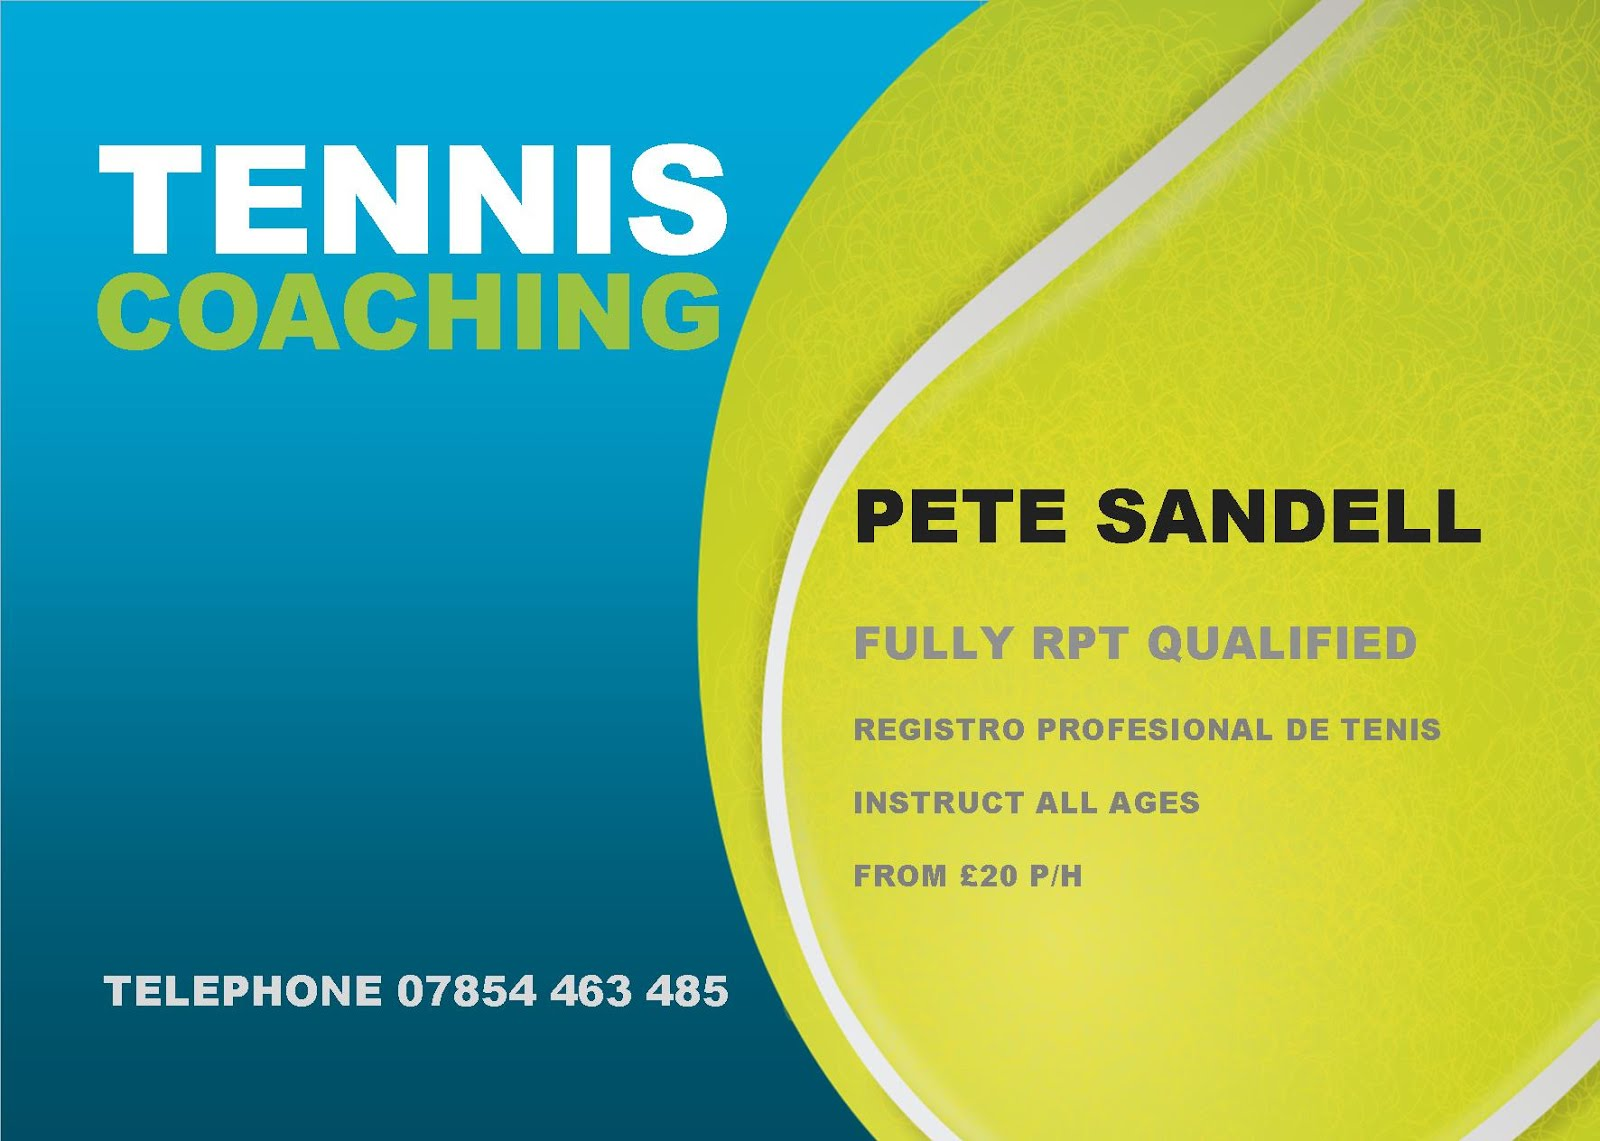 Tennis Coaching Business Cards   Best Business Cards